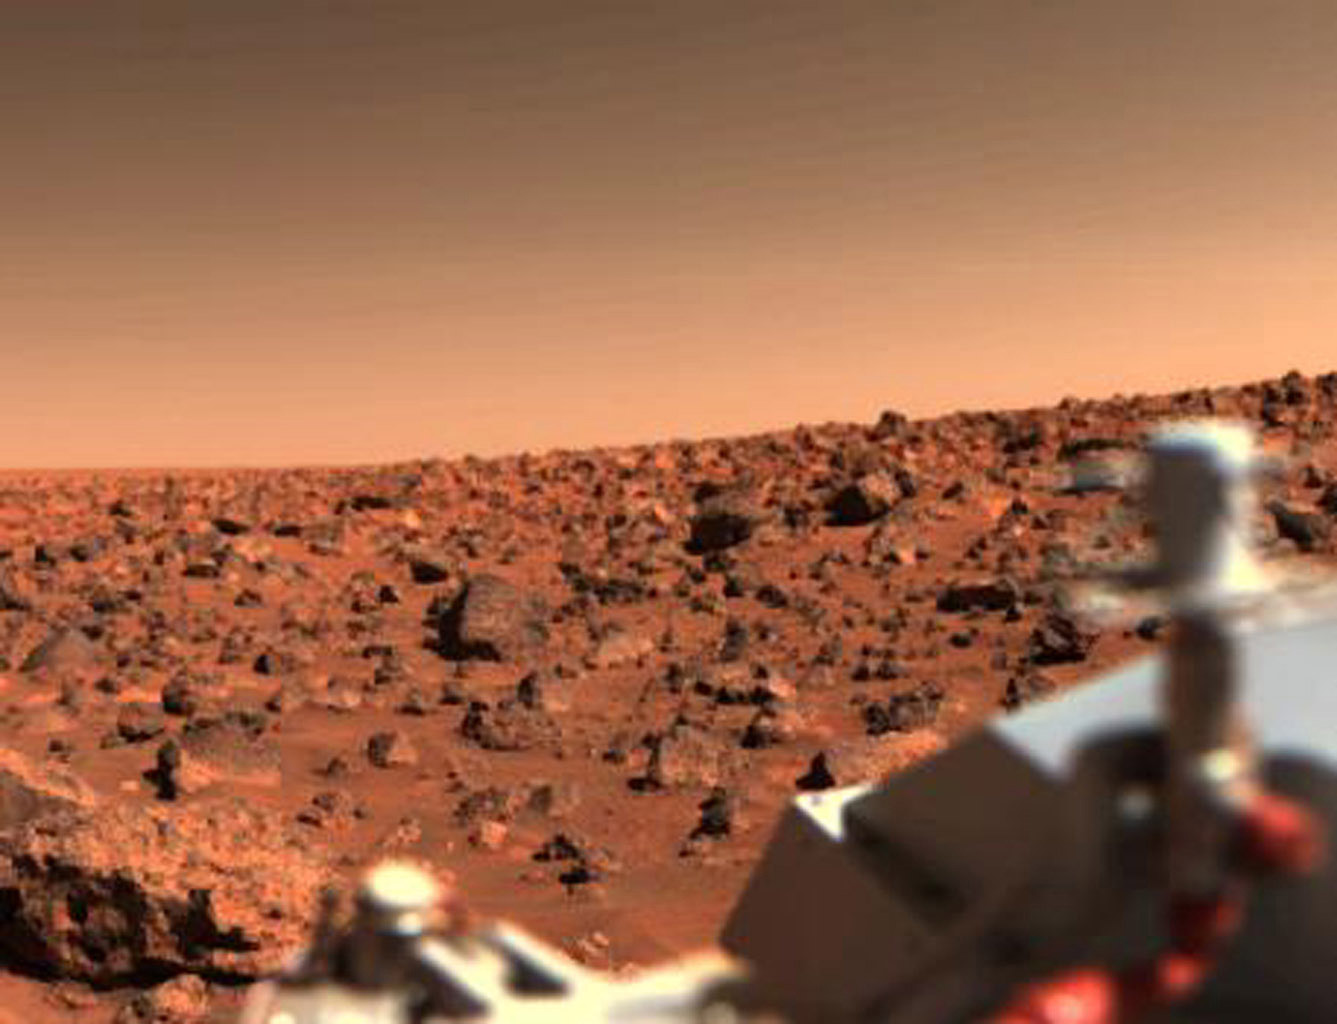 Looking south from NASA's Viking 2 on Sept. 6, 1997, the orange-red surface of the nearly level plain upon which the spacecraft sits is seen strewn with rocks as large as three feet across.